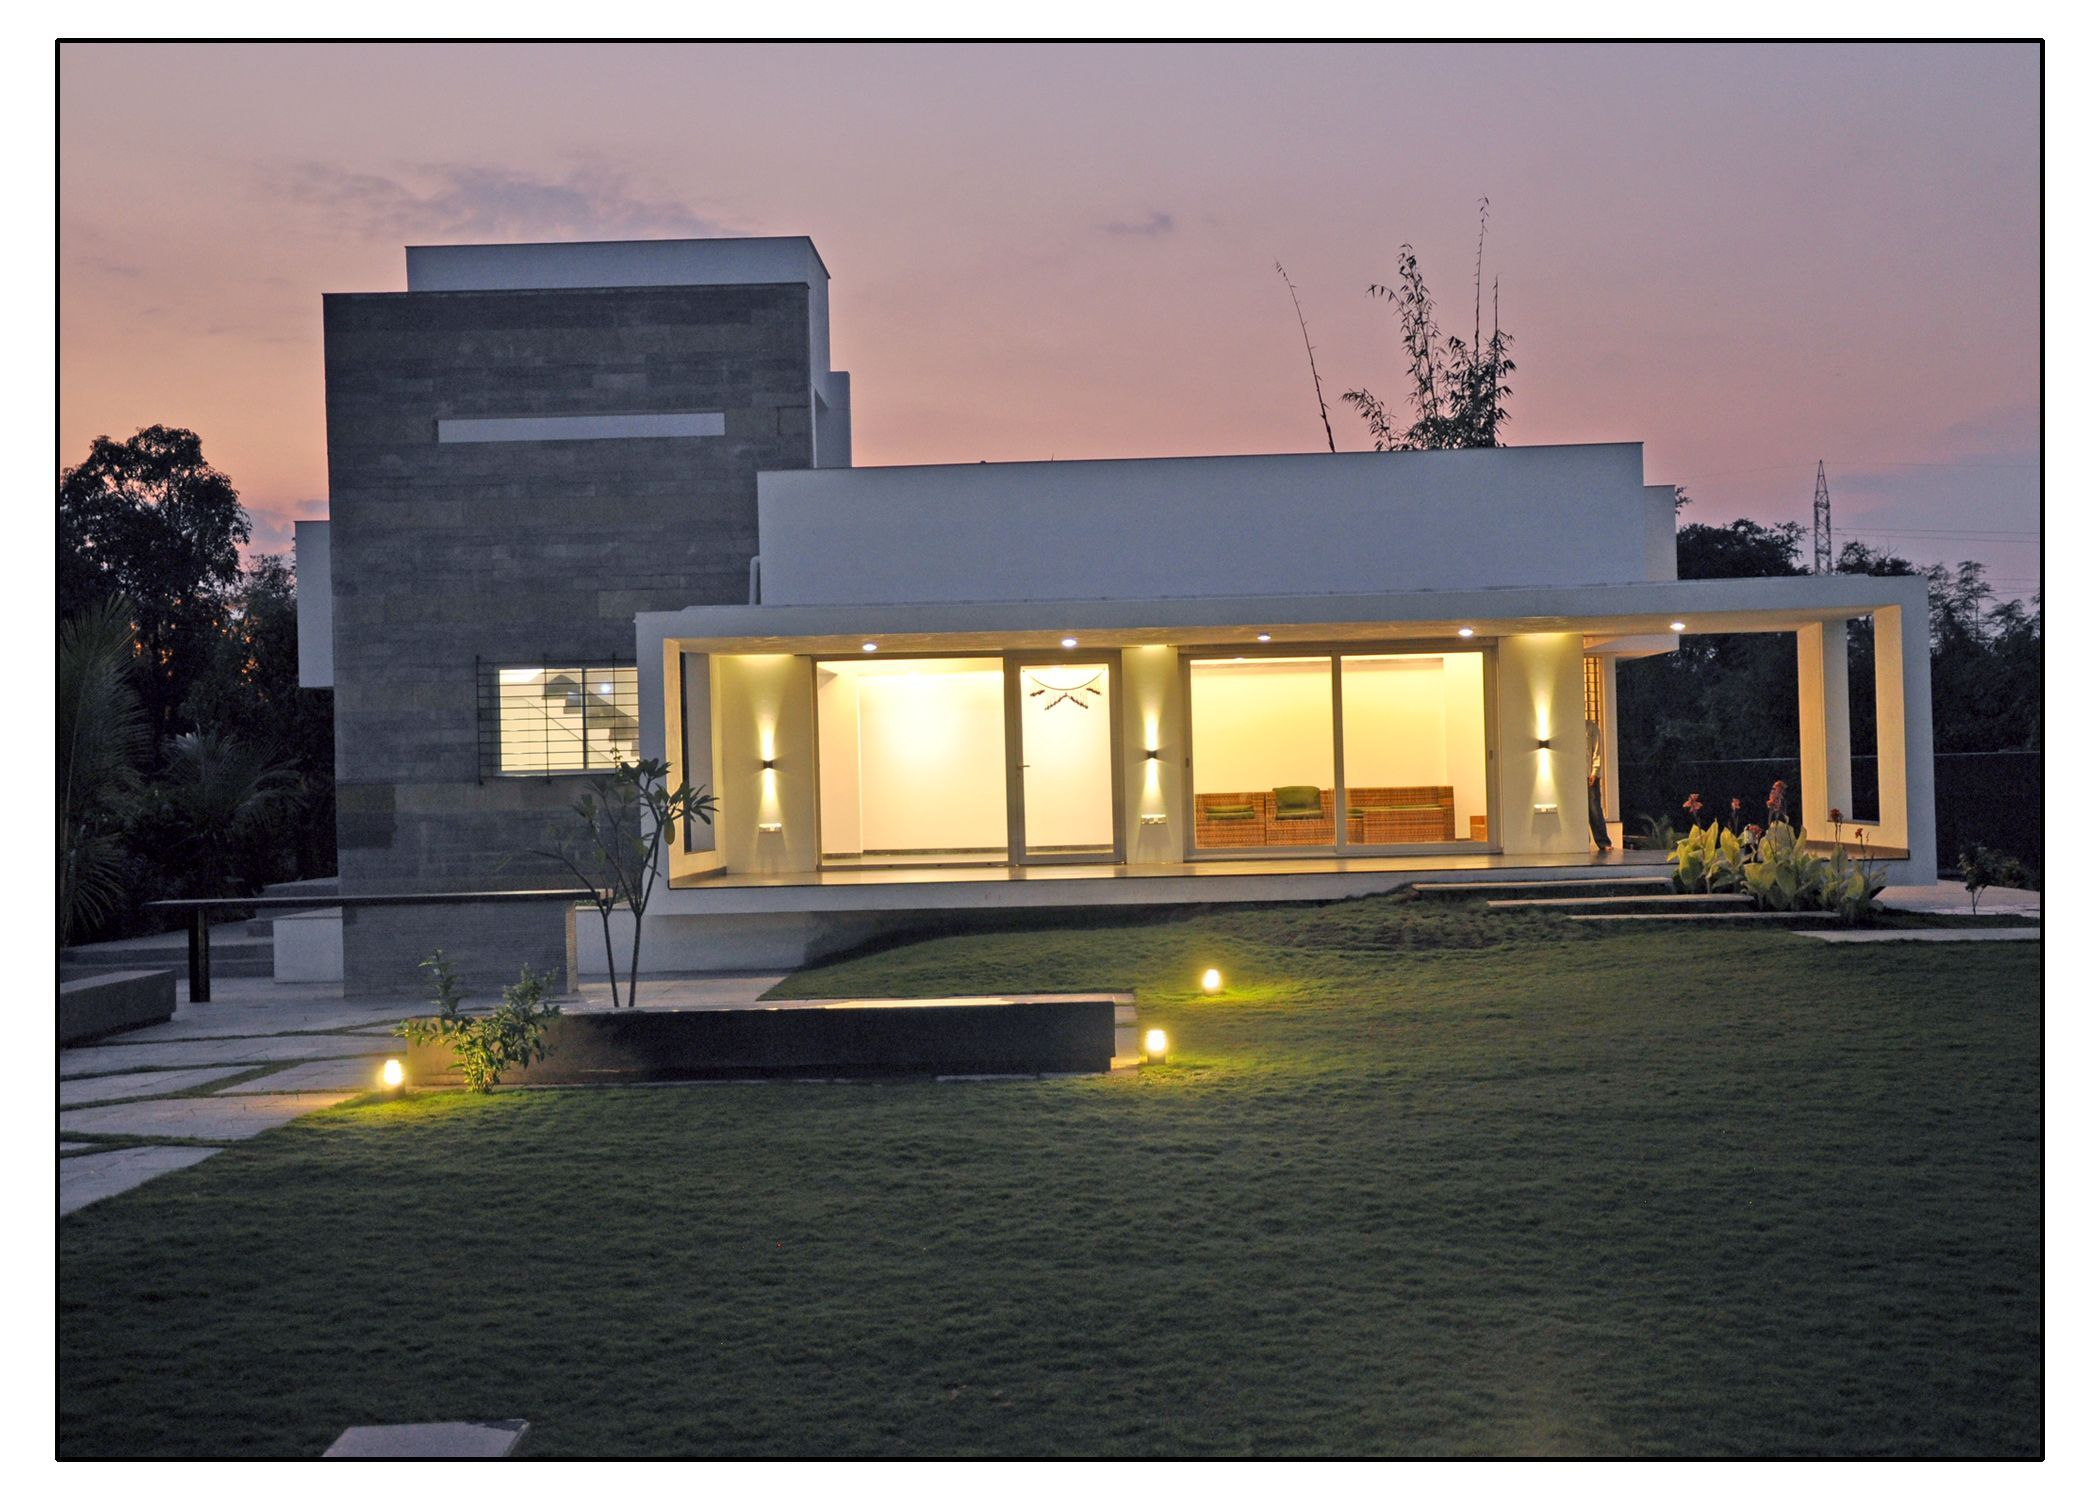 Architecture and interior design projects in india House architecture design online